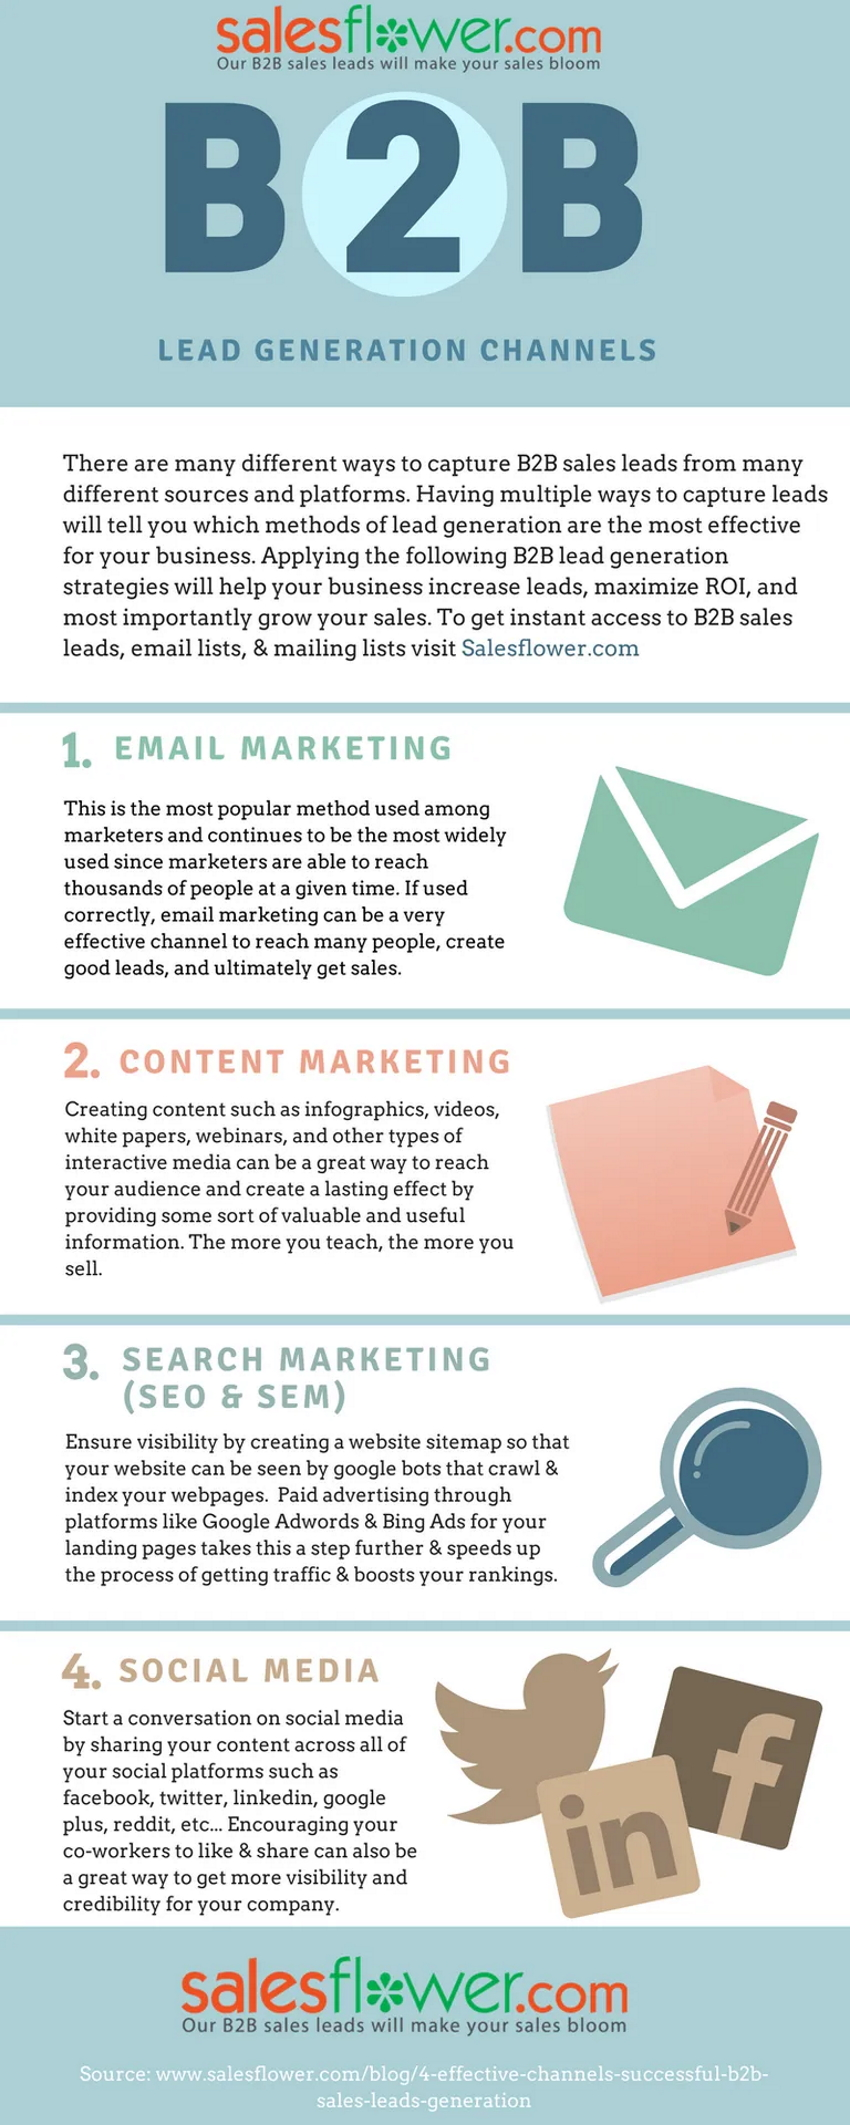 infographic-facts-lead-generation-channels